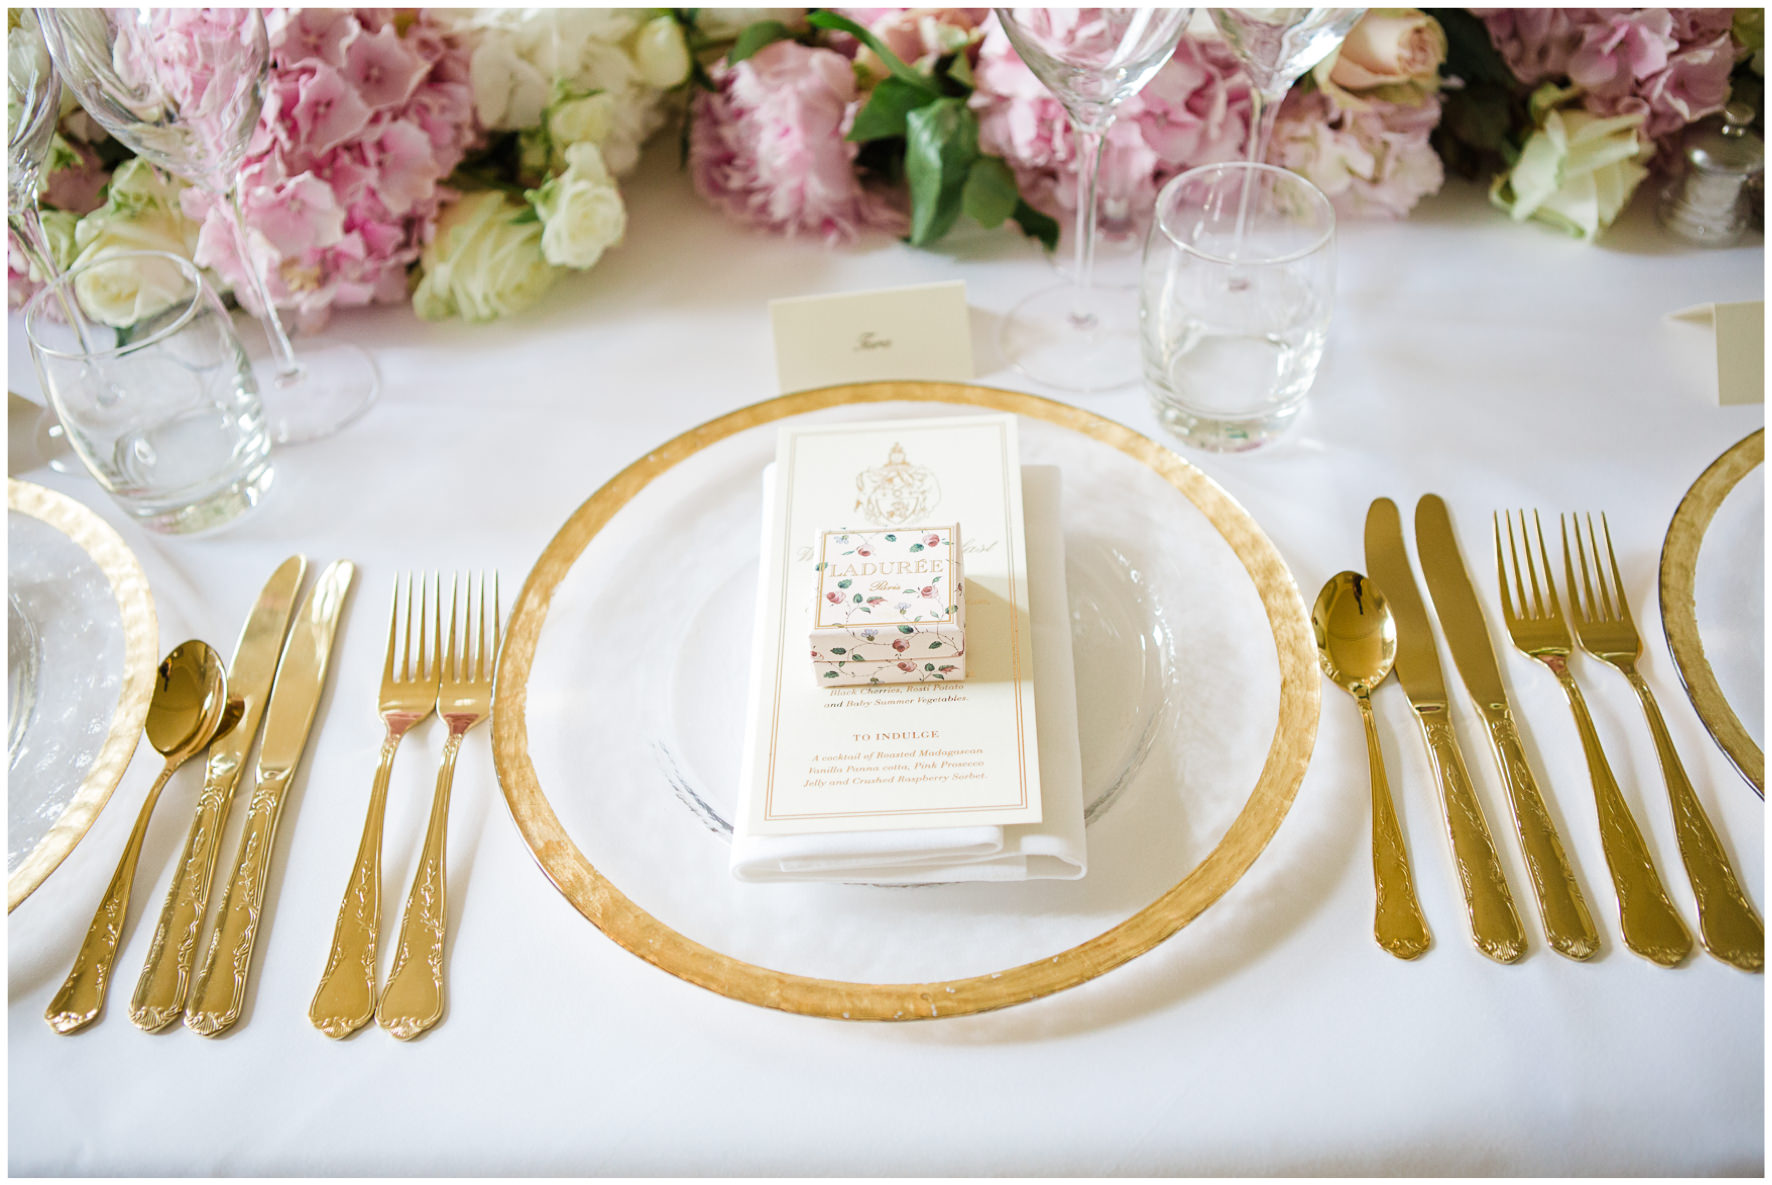 Lucy Davenport Photography, Aynhoe Park, Oxfordshire, wedding venue, Rock My Wedding, wedding breakfast, gold crockery